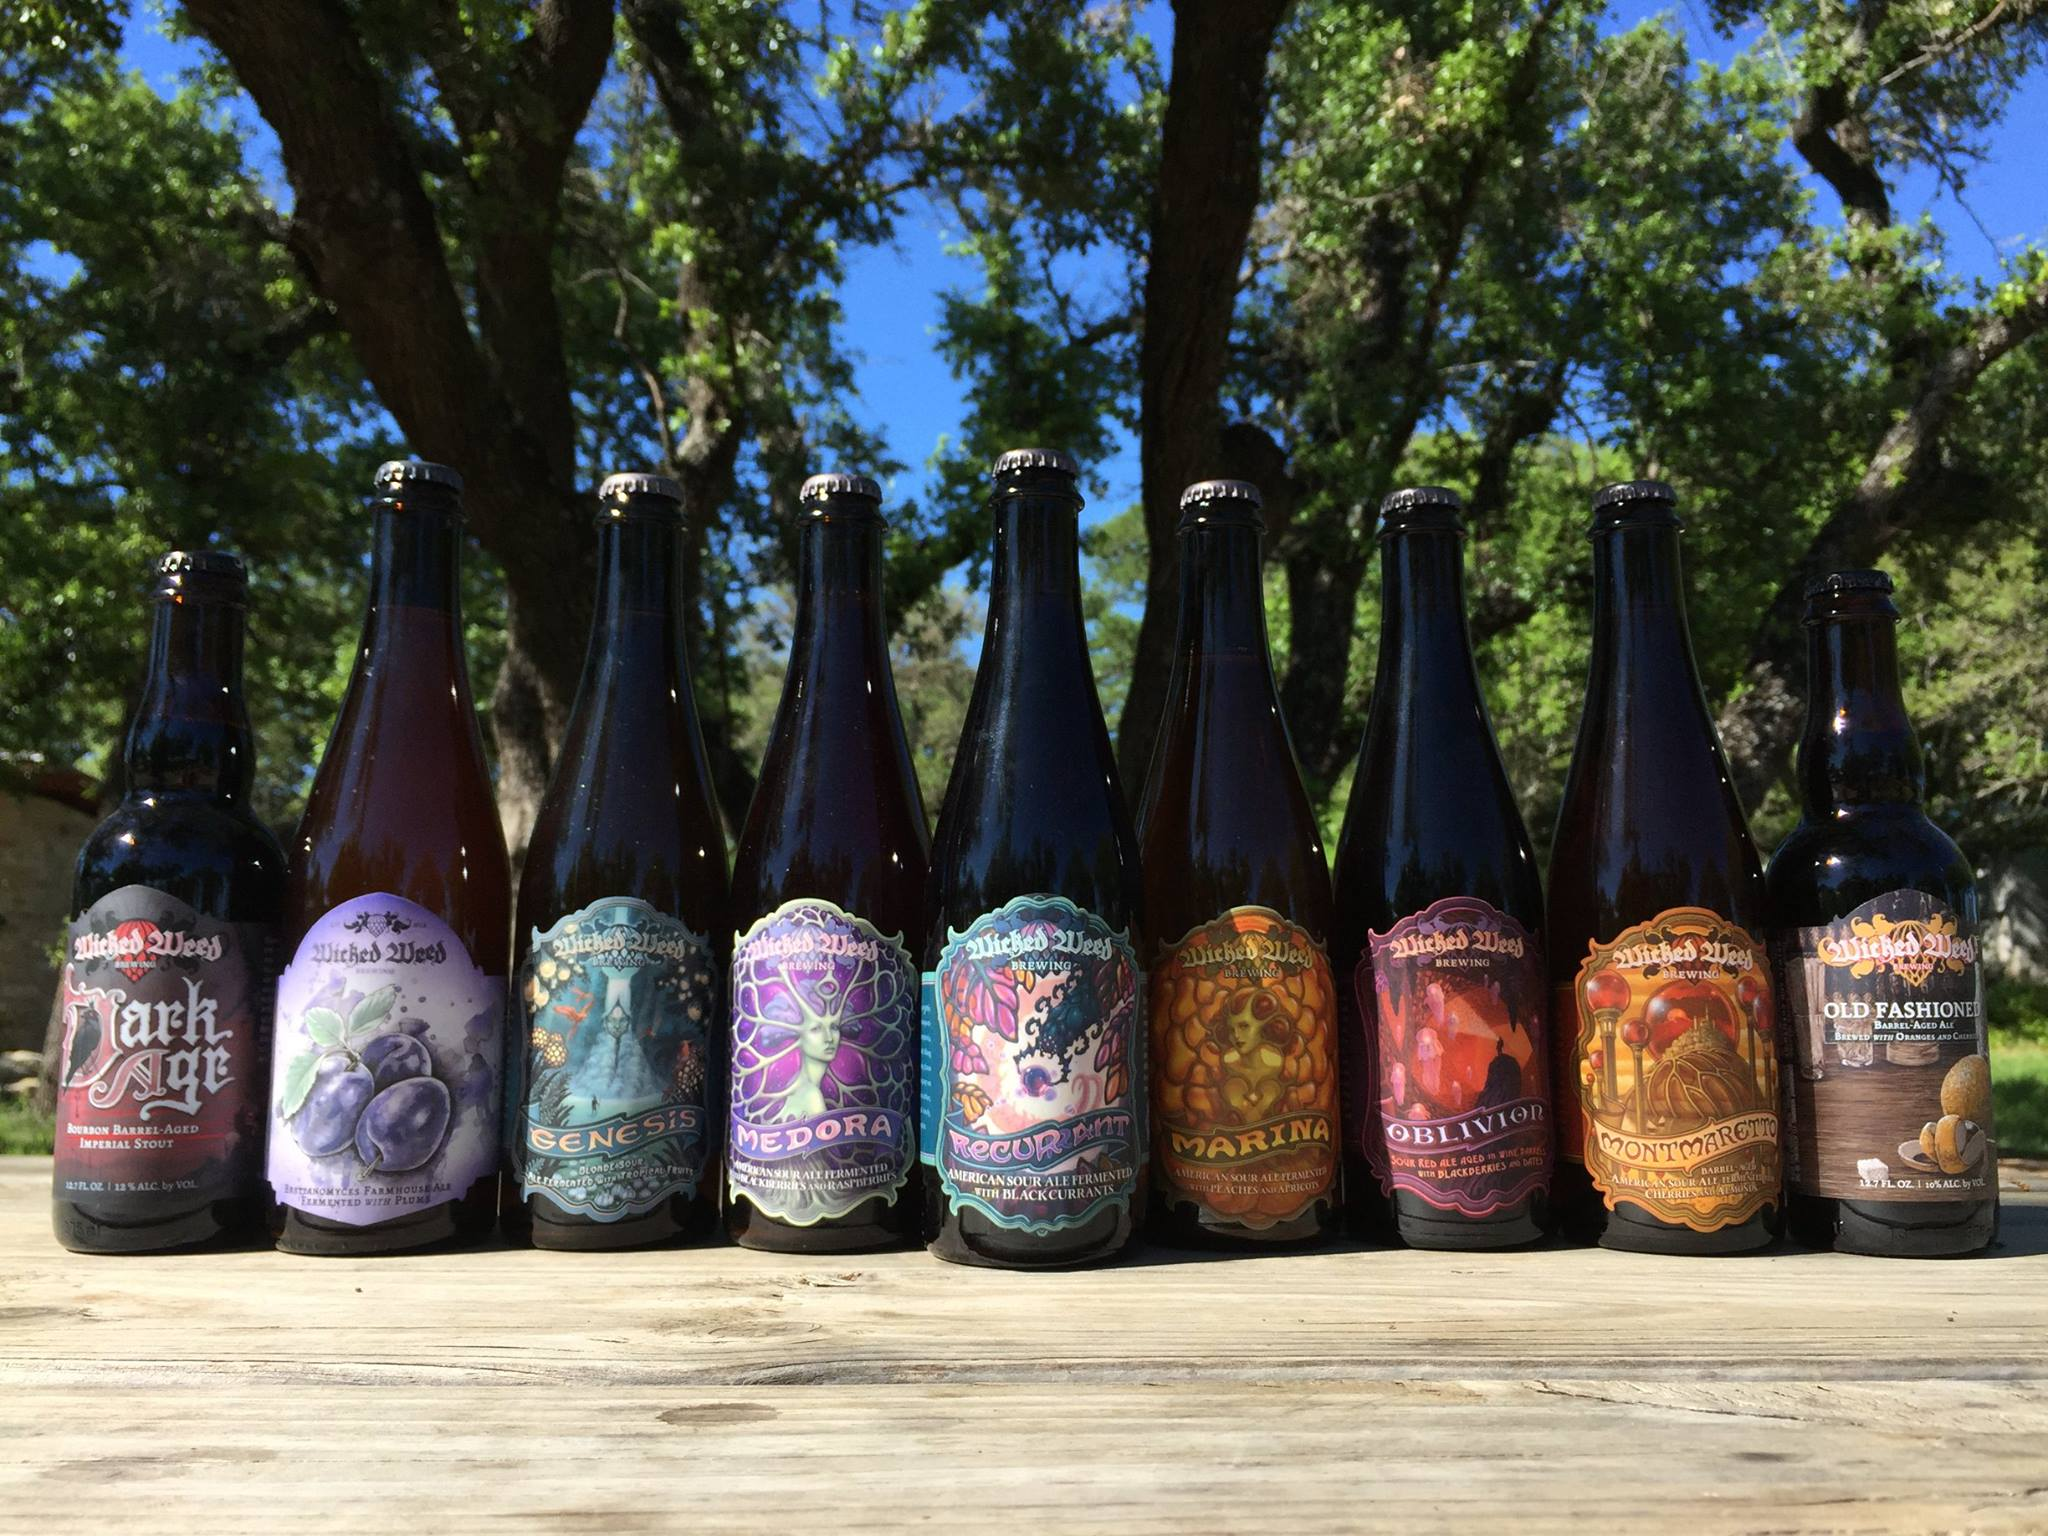 Wicked Weed at Jester King Brewery